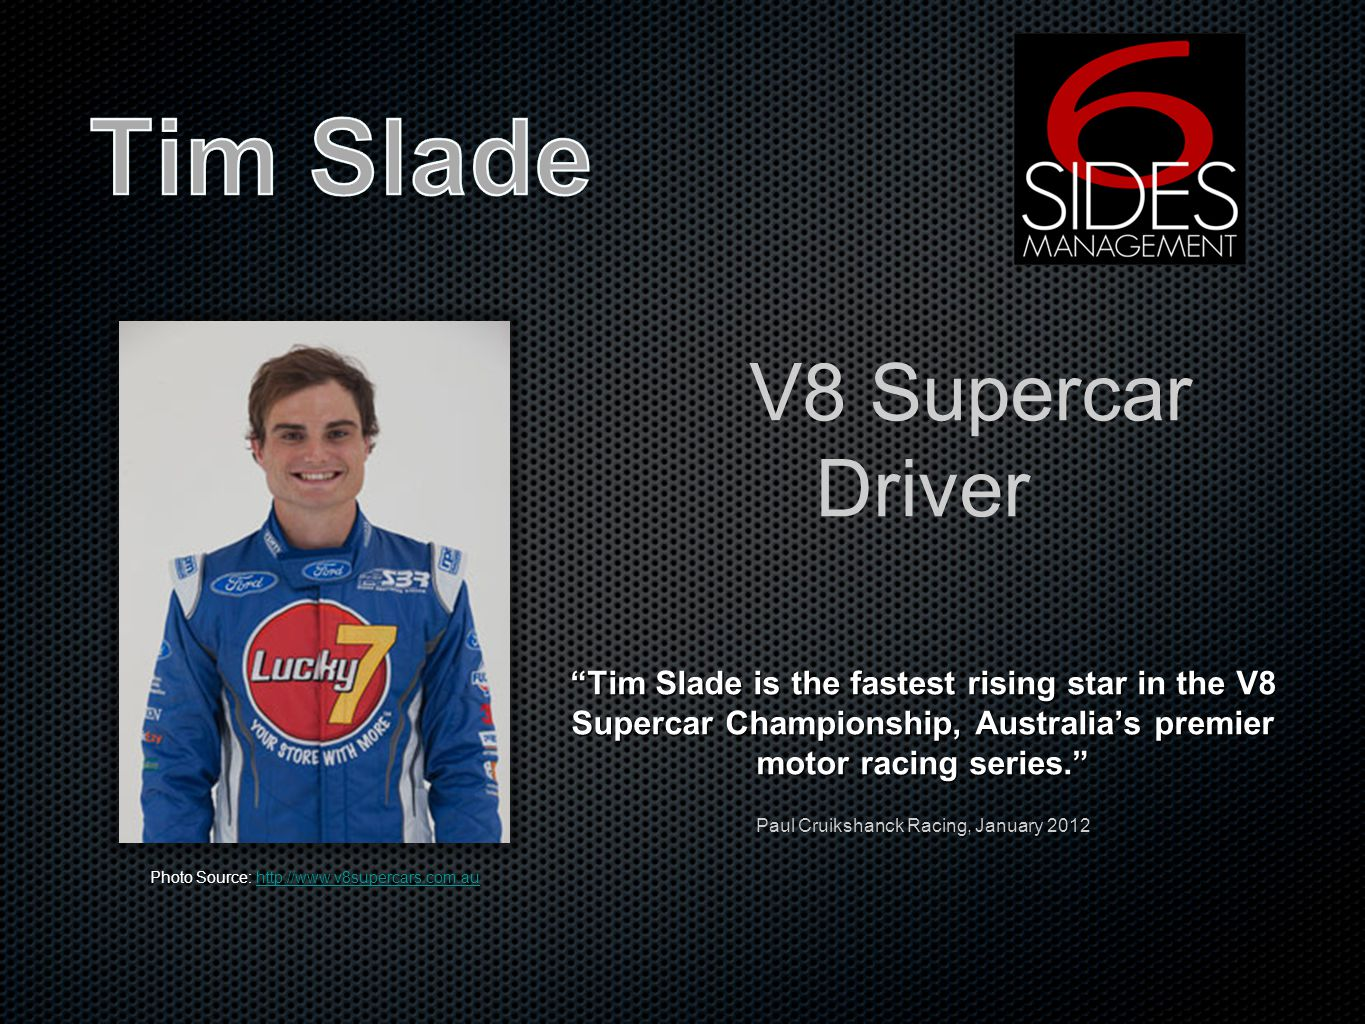 V8 Supercar Driver Tim Slade is the fastest rising star in the V8 Supercar Championship, Australias premier motor racing series.